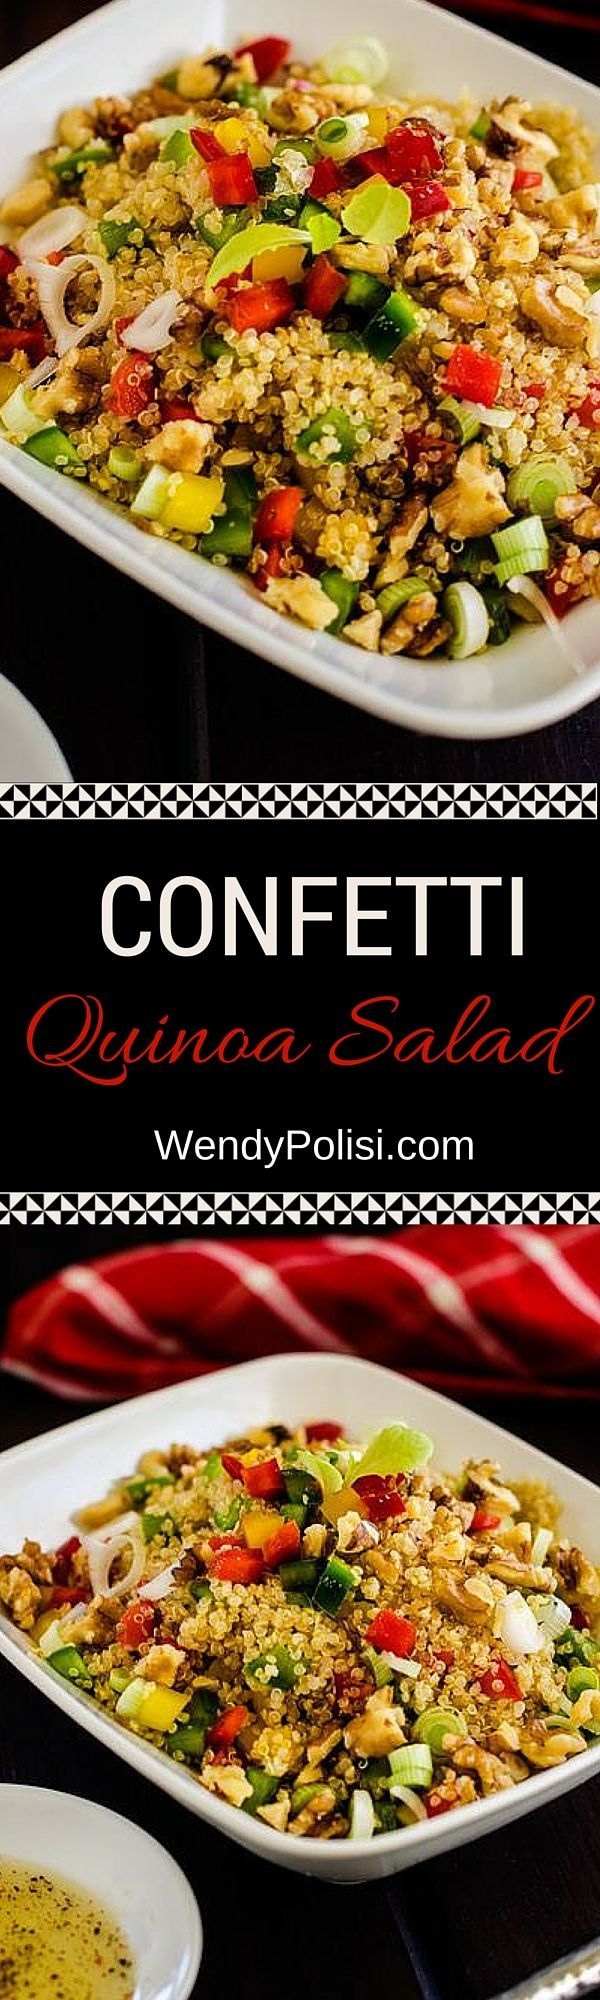 Confetti Quinoa Salad - This easy vegan recipe makes the perfect lunch or dinner! One of my favorite simple quinoa recipes.